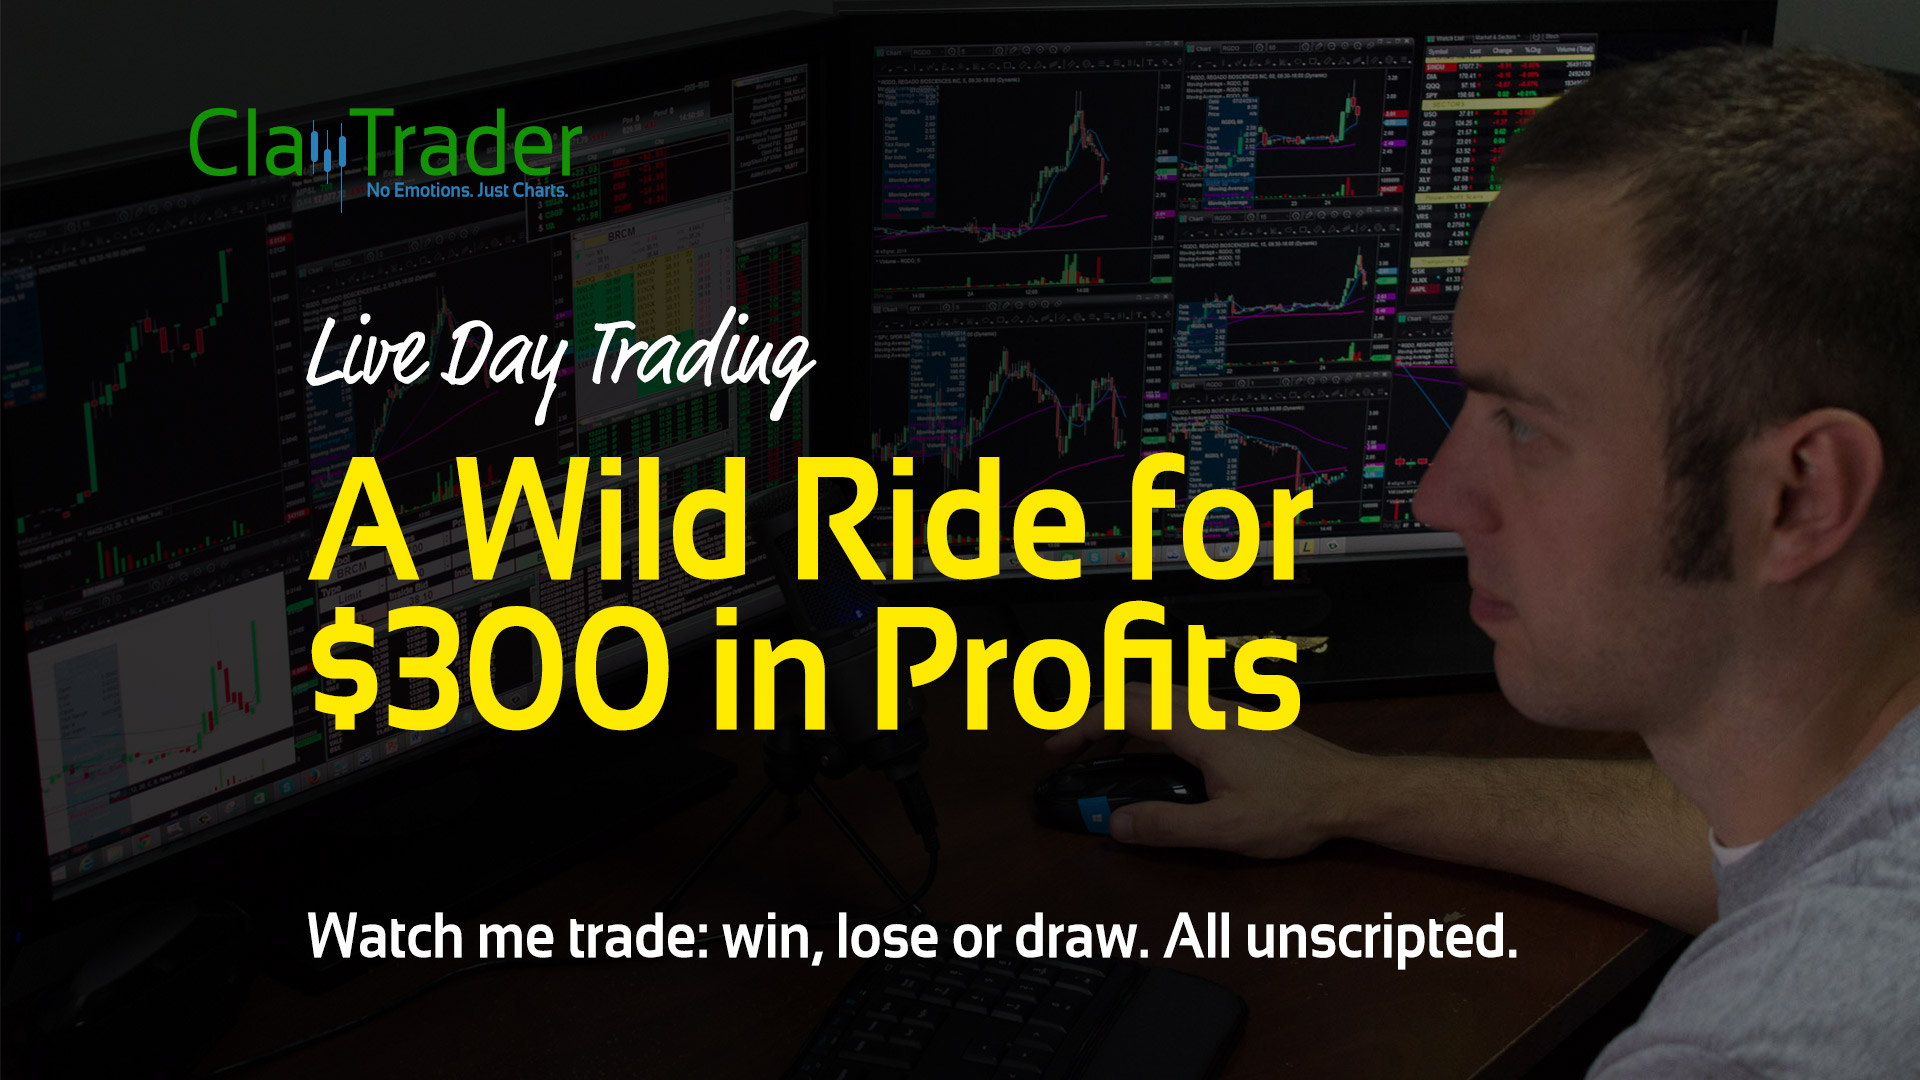 Live Day Trading - A Wild Ride for $300 in Profits